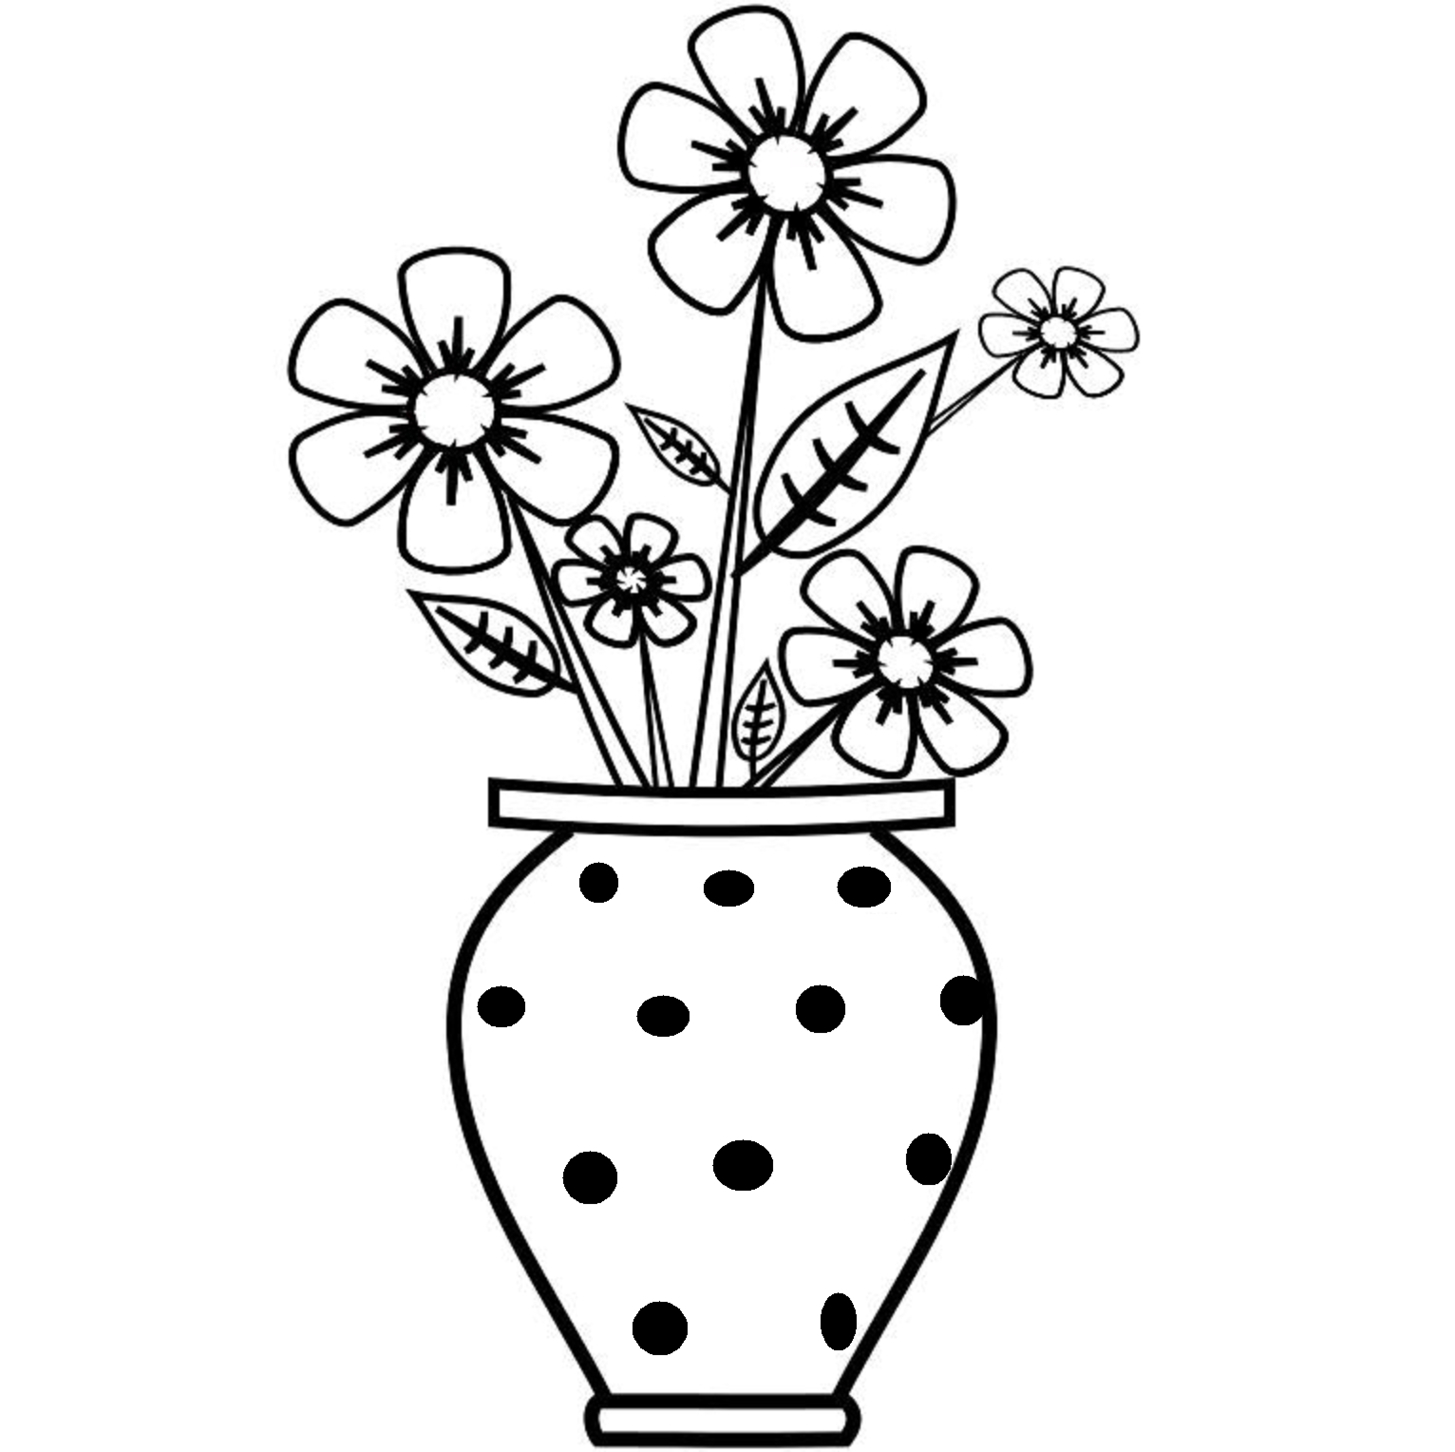 1455x1452 Flower Vase With Flowers Drawings For Kids Flower Pot Drawing